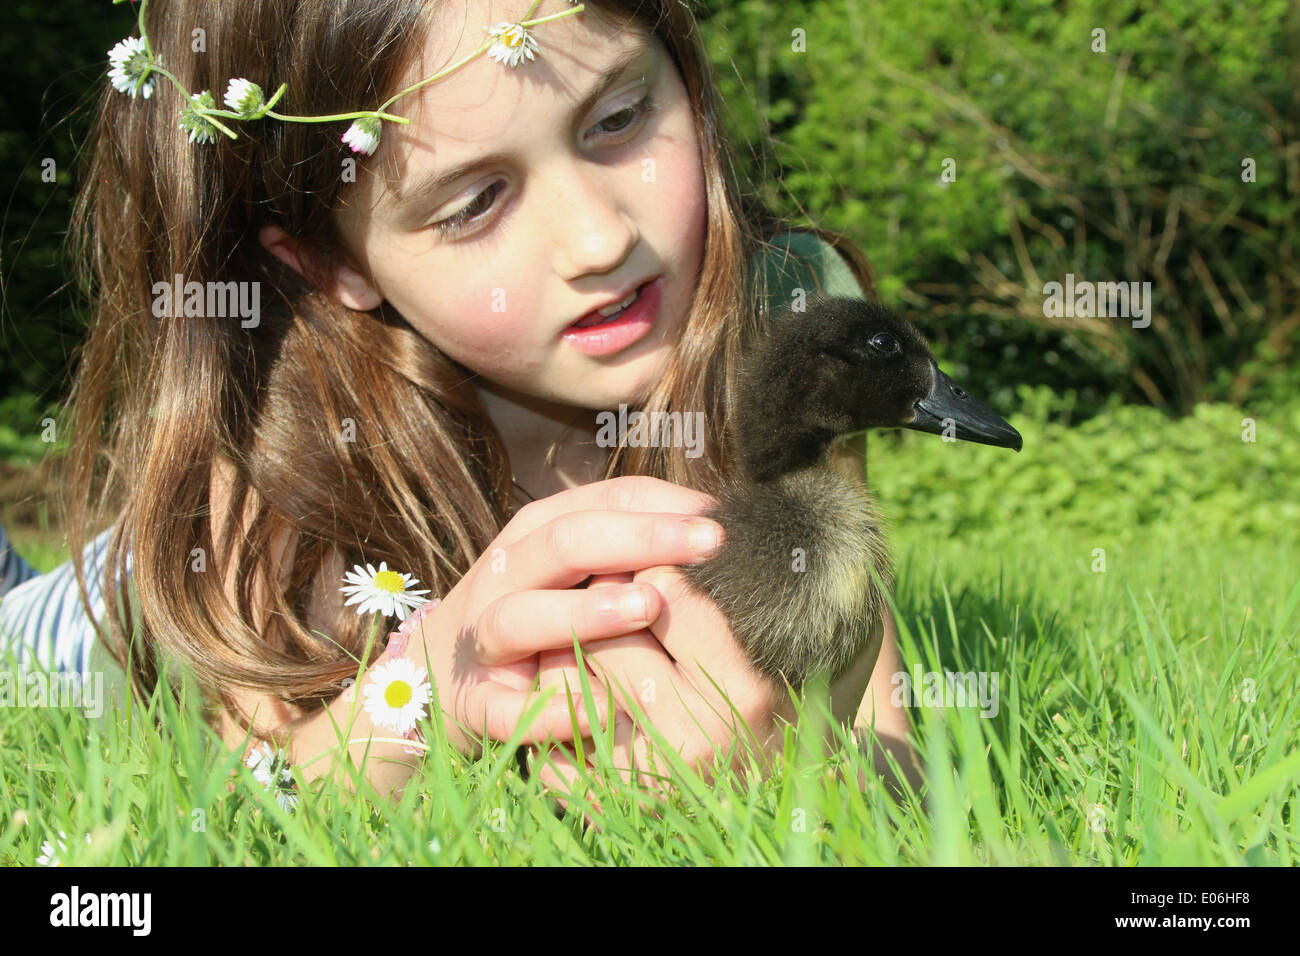 Portrait of eight old girl with a daisy chain holding her pet cayuga duckling Anas platyrhynchos domesticus, uk - Stock Image